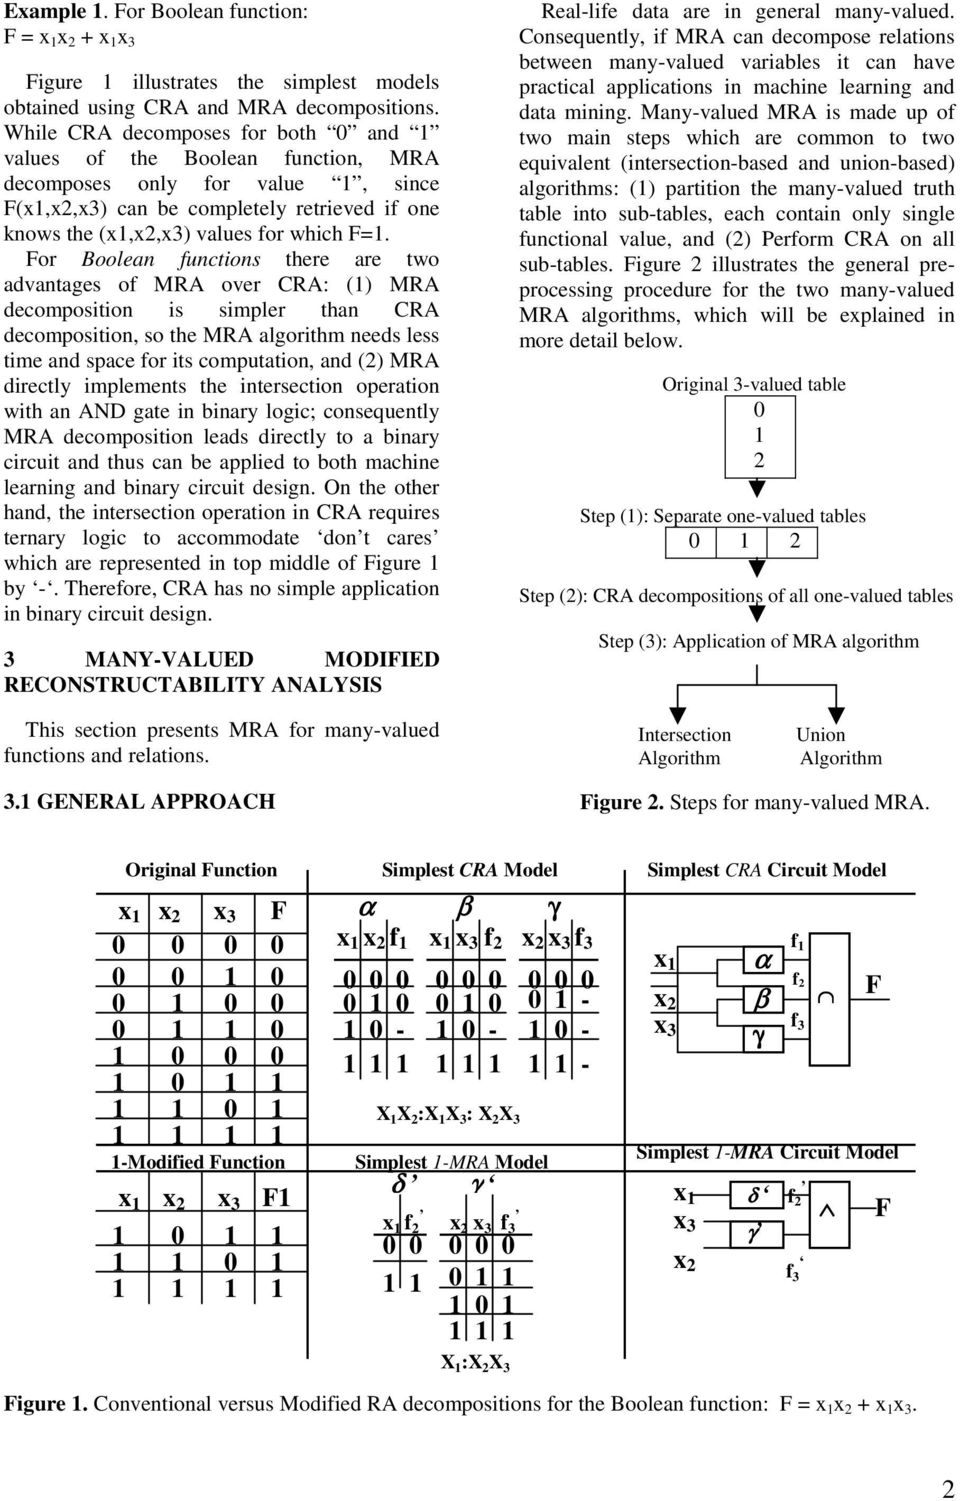 or Boolean functions there are two advantages of MRA over CRA: (1) MRA decomposition is simpler than CRA decomposition, so the MRA algorithm needs less time and space for its computation, and (2) MRA